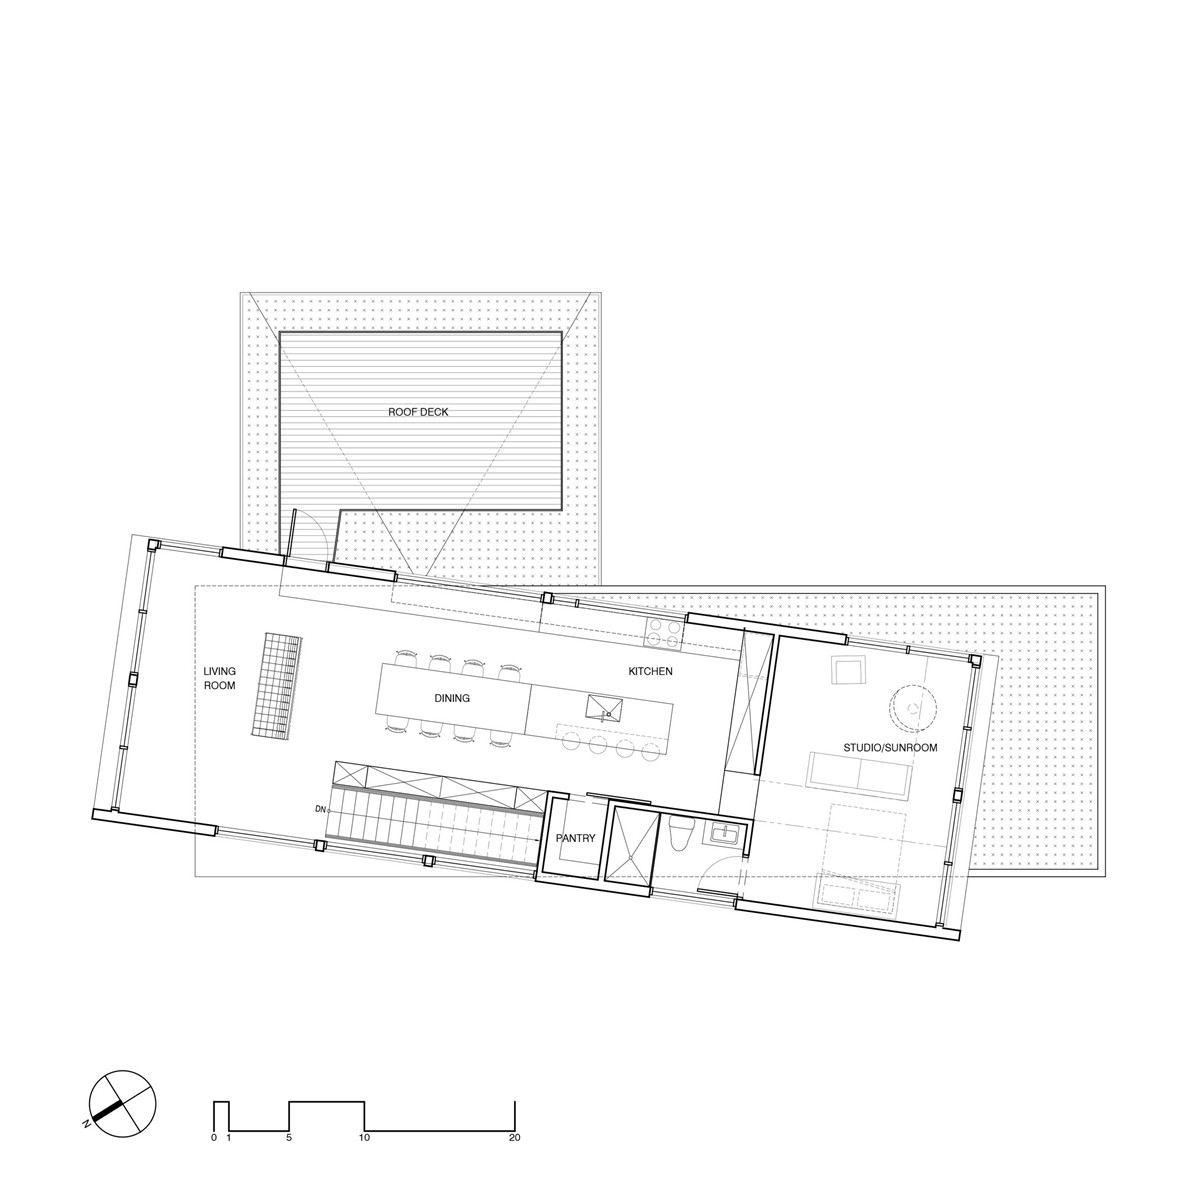 fyren-omar-gandhi_dezeen_2364_second-floor-plan.jpg